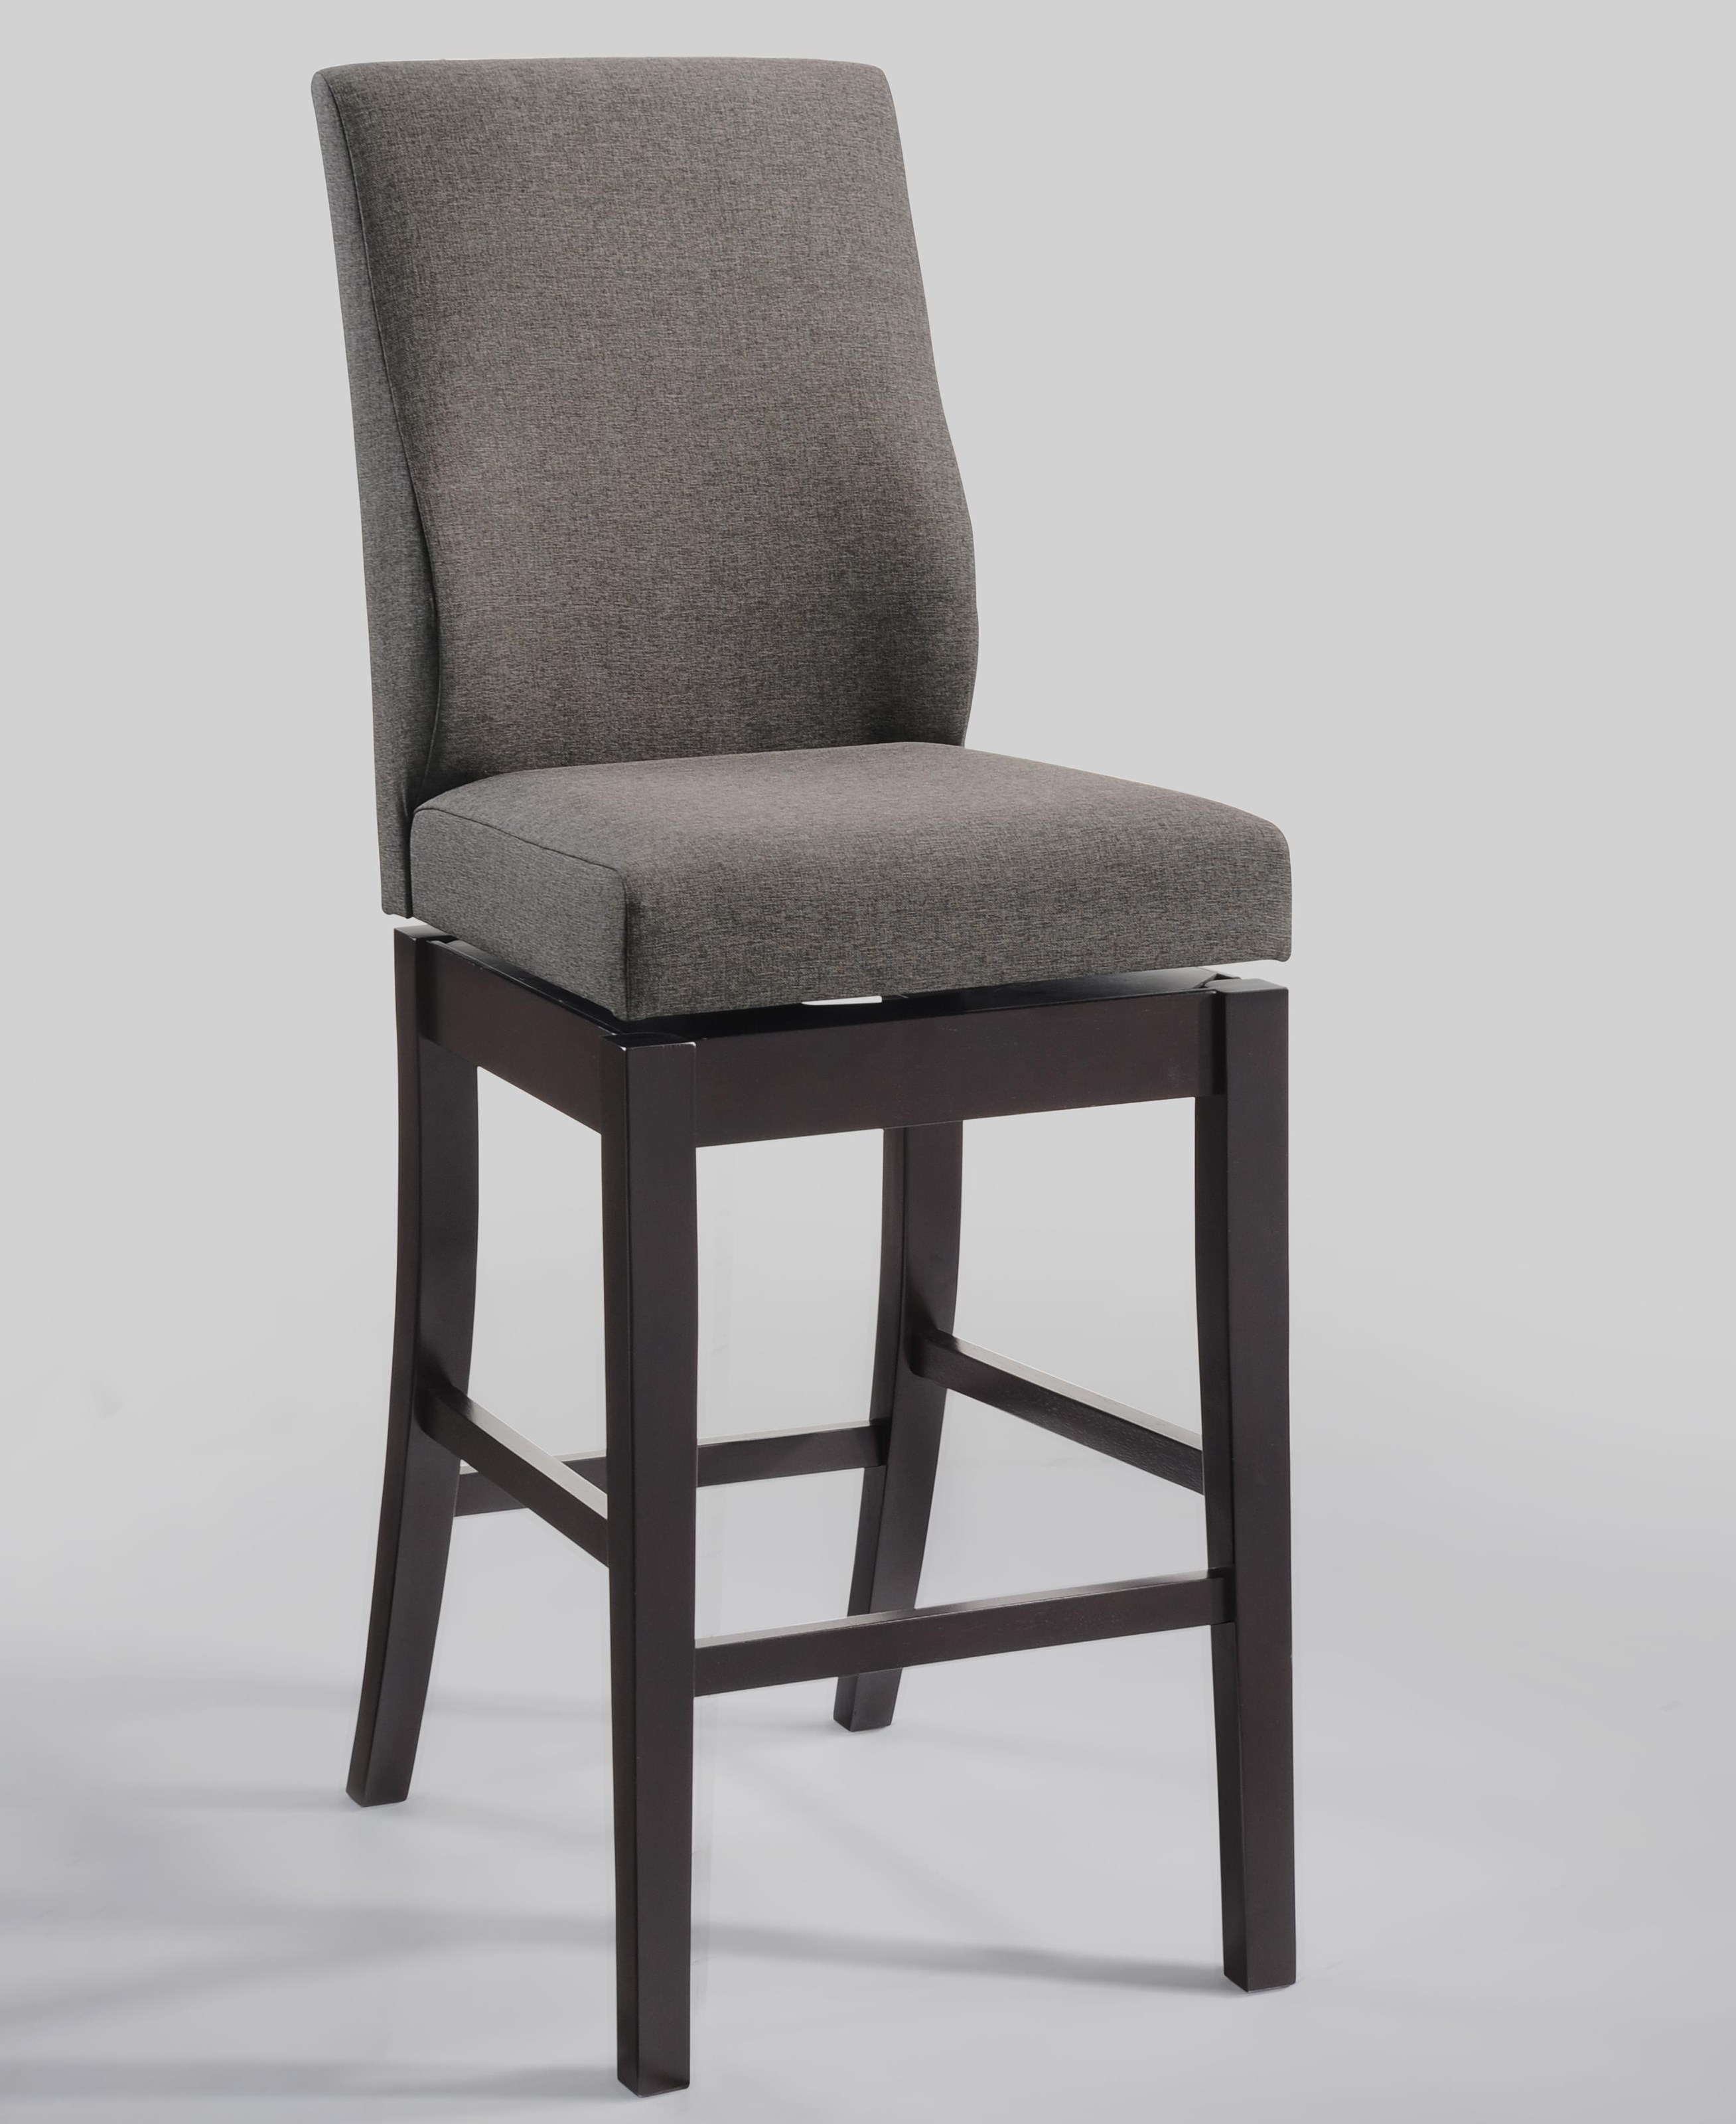 Crown Mark Bar Stools 2786s 24 Peb Tillary Swivel Counter Height Stool Del Sol Furniture Bar